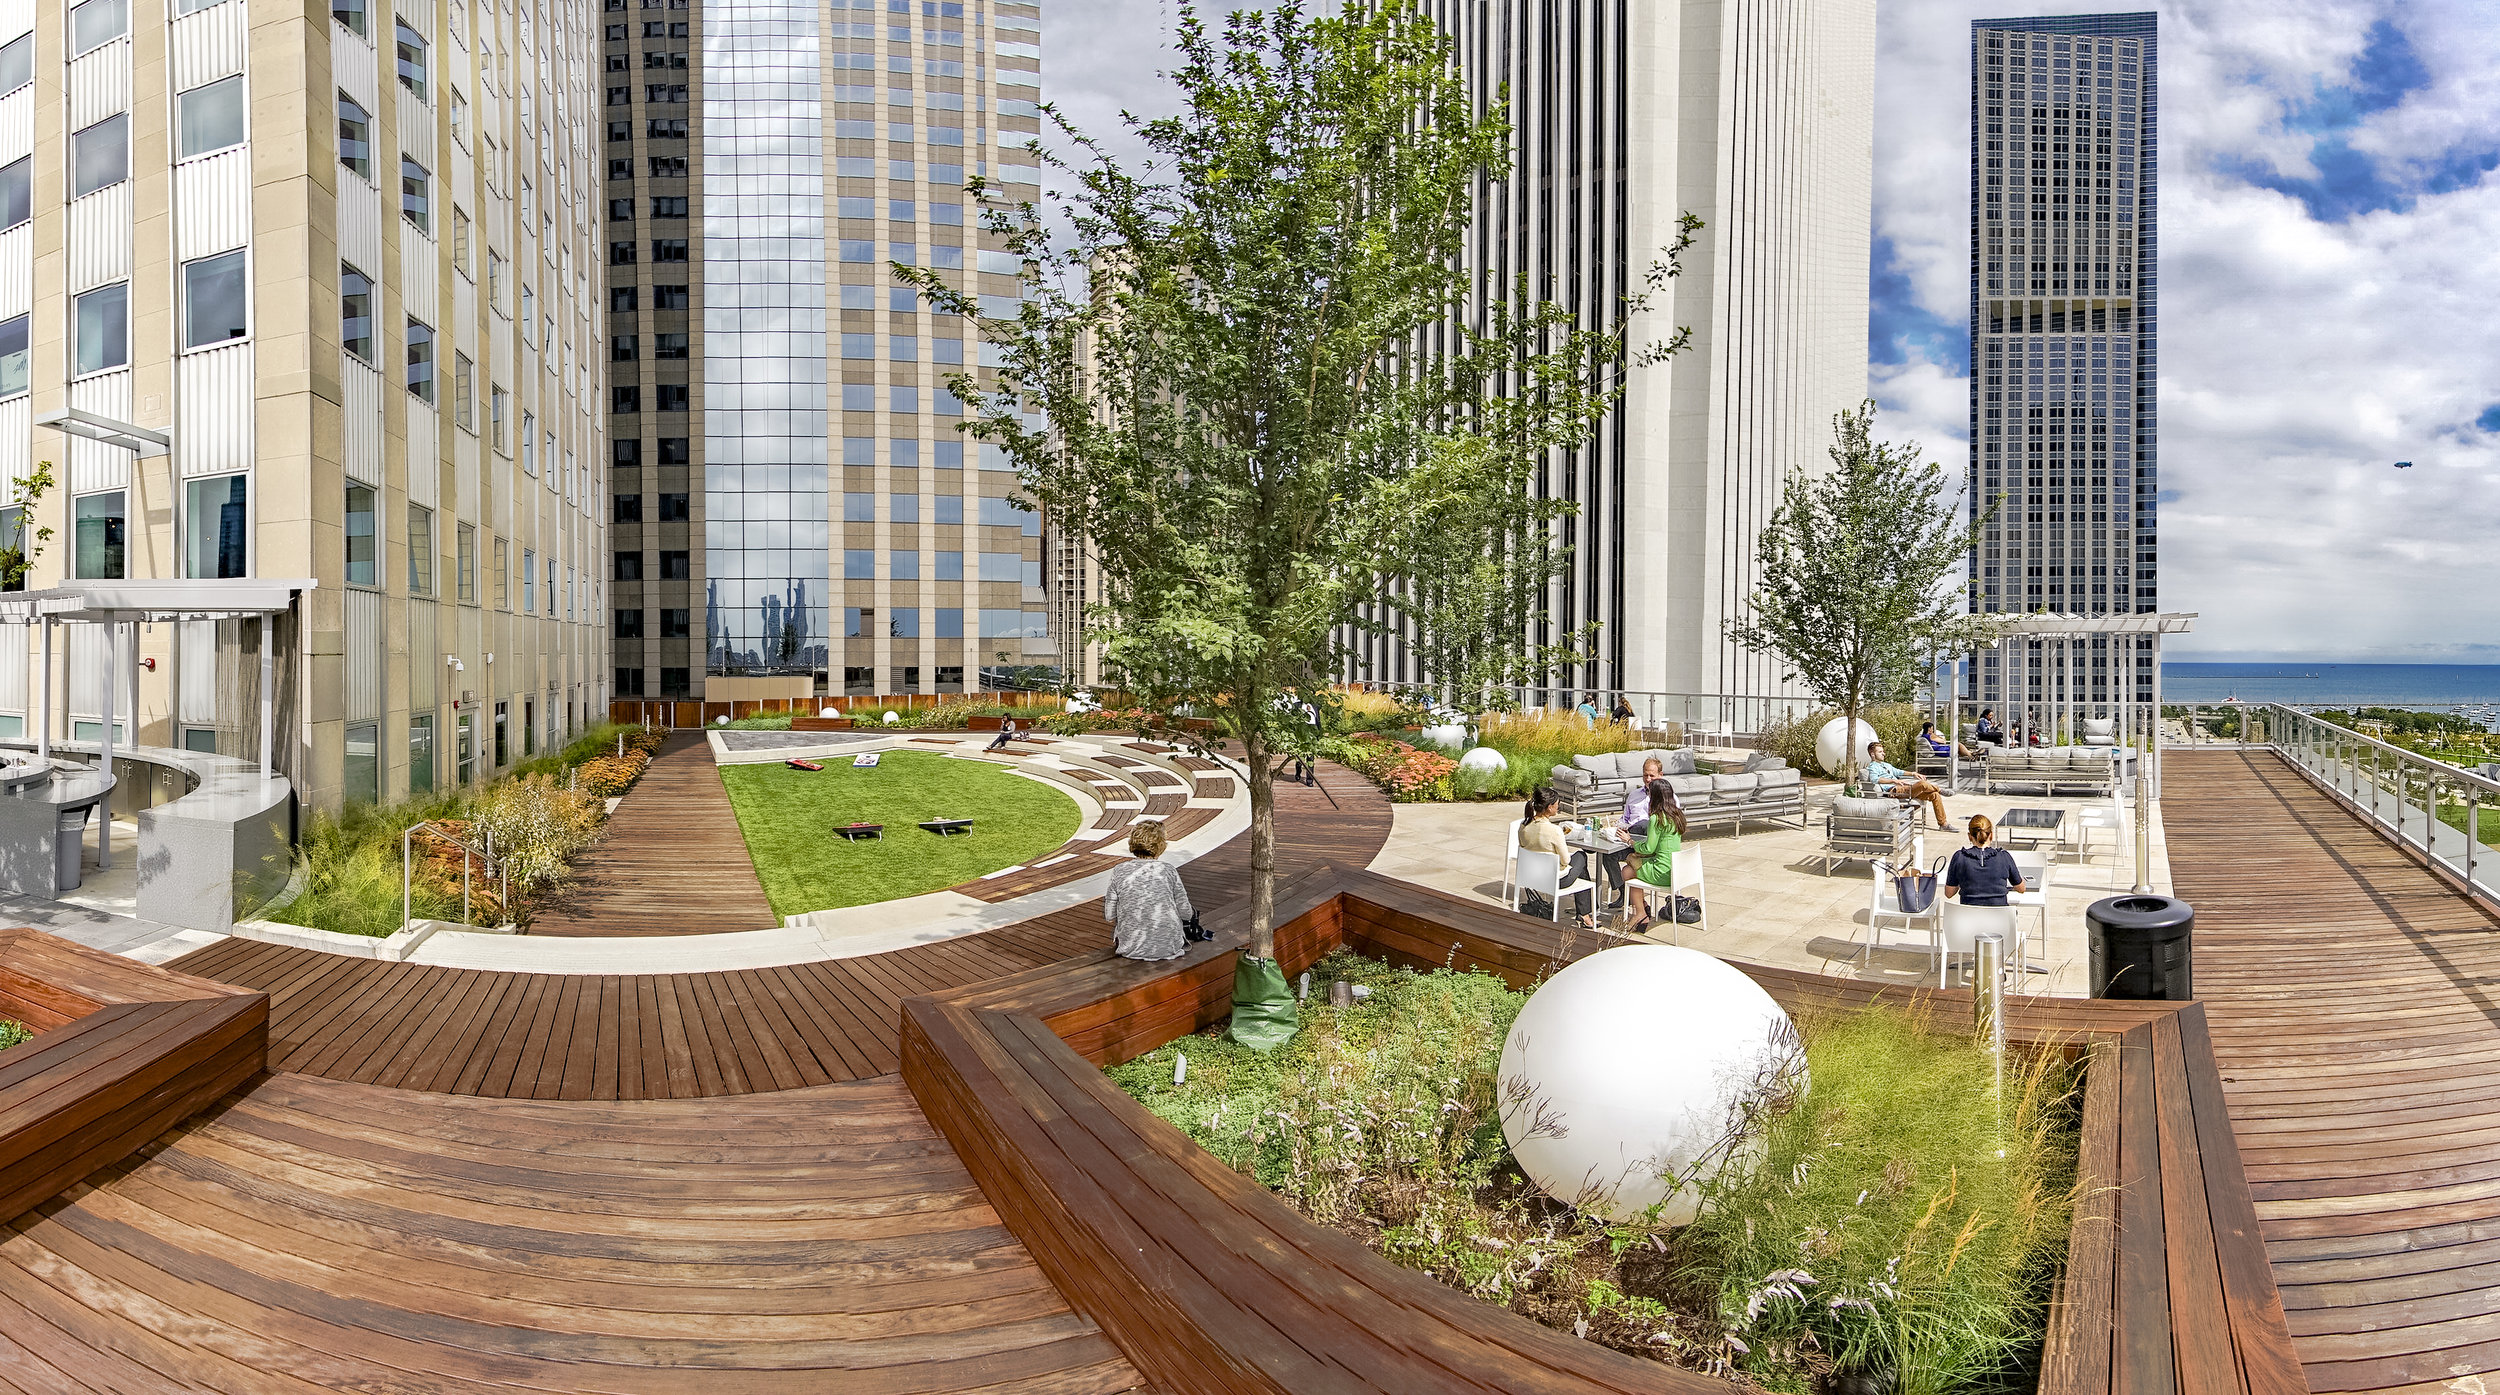 Commercial Construction - Comprehensive services include landscape design and construction to year-round maintenance. Our dedicated and qualified team will partner with your architect or general contractor to exceed your expectations. Our award-winning installations include: Millennium Park, Art Institute of Chicago Modern Wing, Pritzker Family Children's Zoo, 500 N Lakeshore Drive, Westfield Old Orchard Mall and Back of the Yards High School.